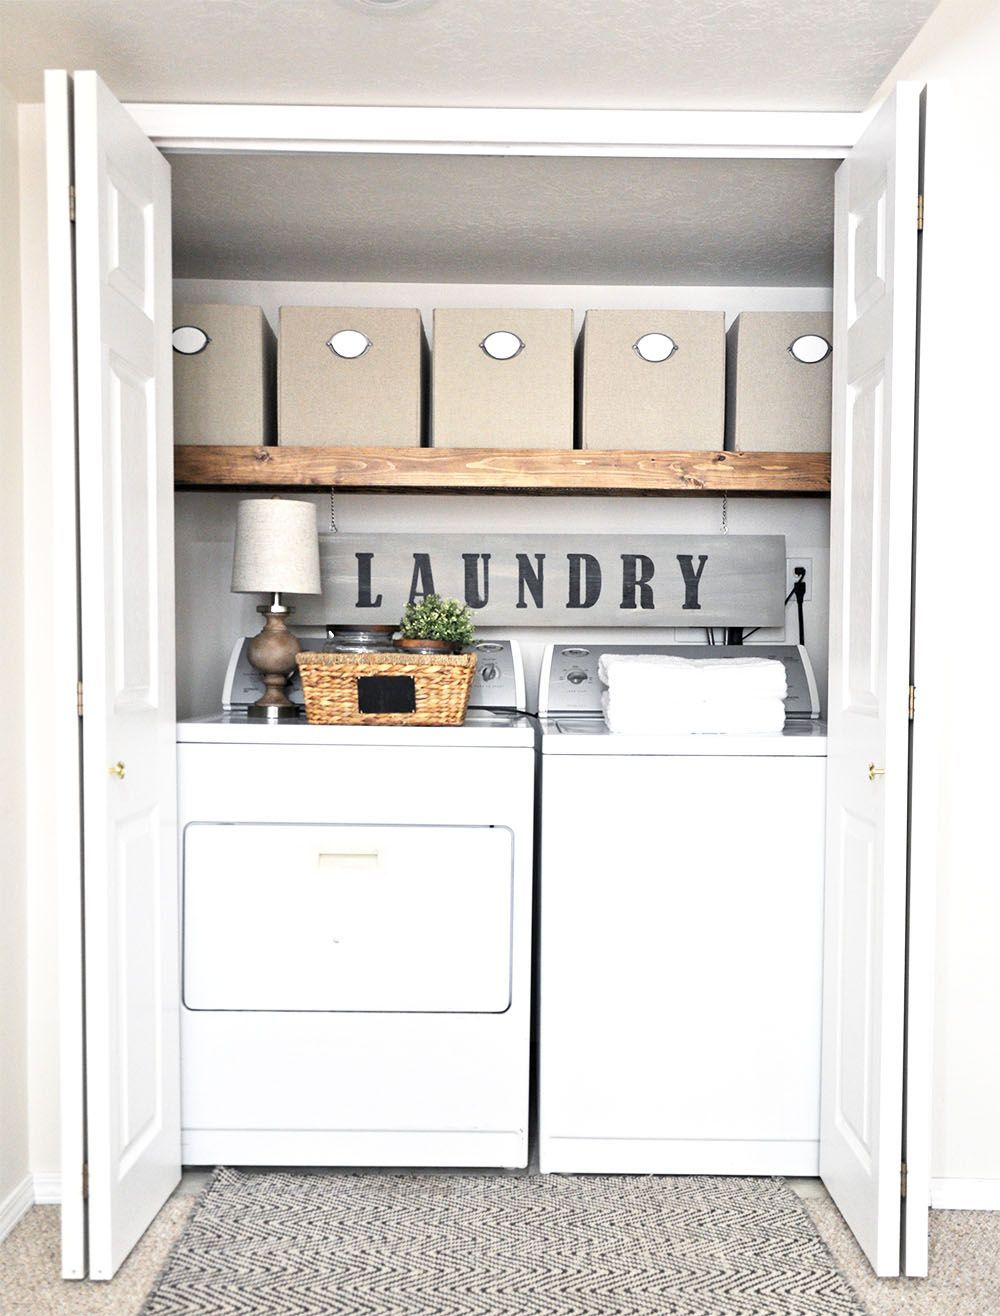 Laundry room makeover pinteres laundry room makeover more diy bedroom decorliving room decordecorating ideasdecor solutioingenieria Images